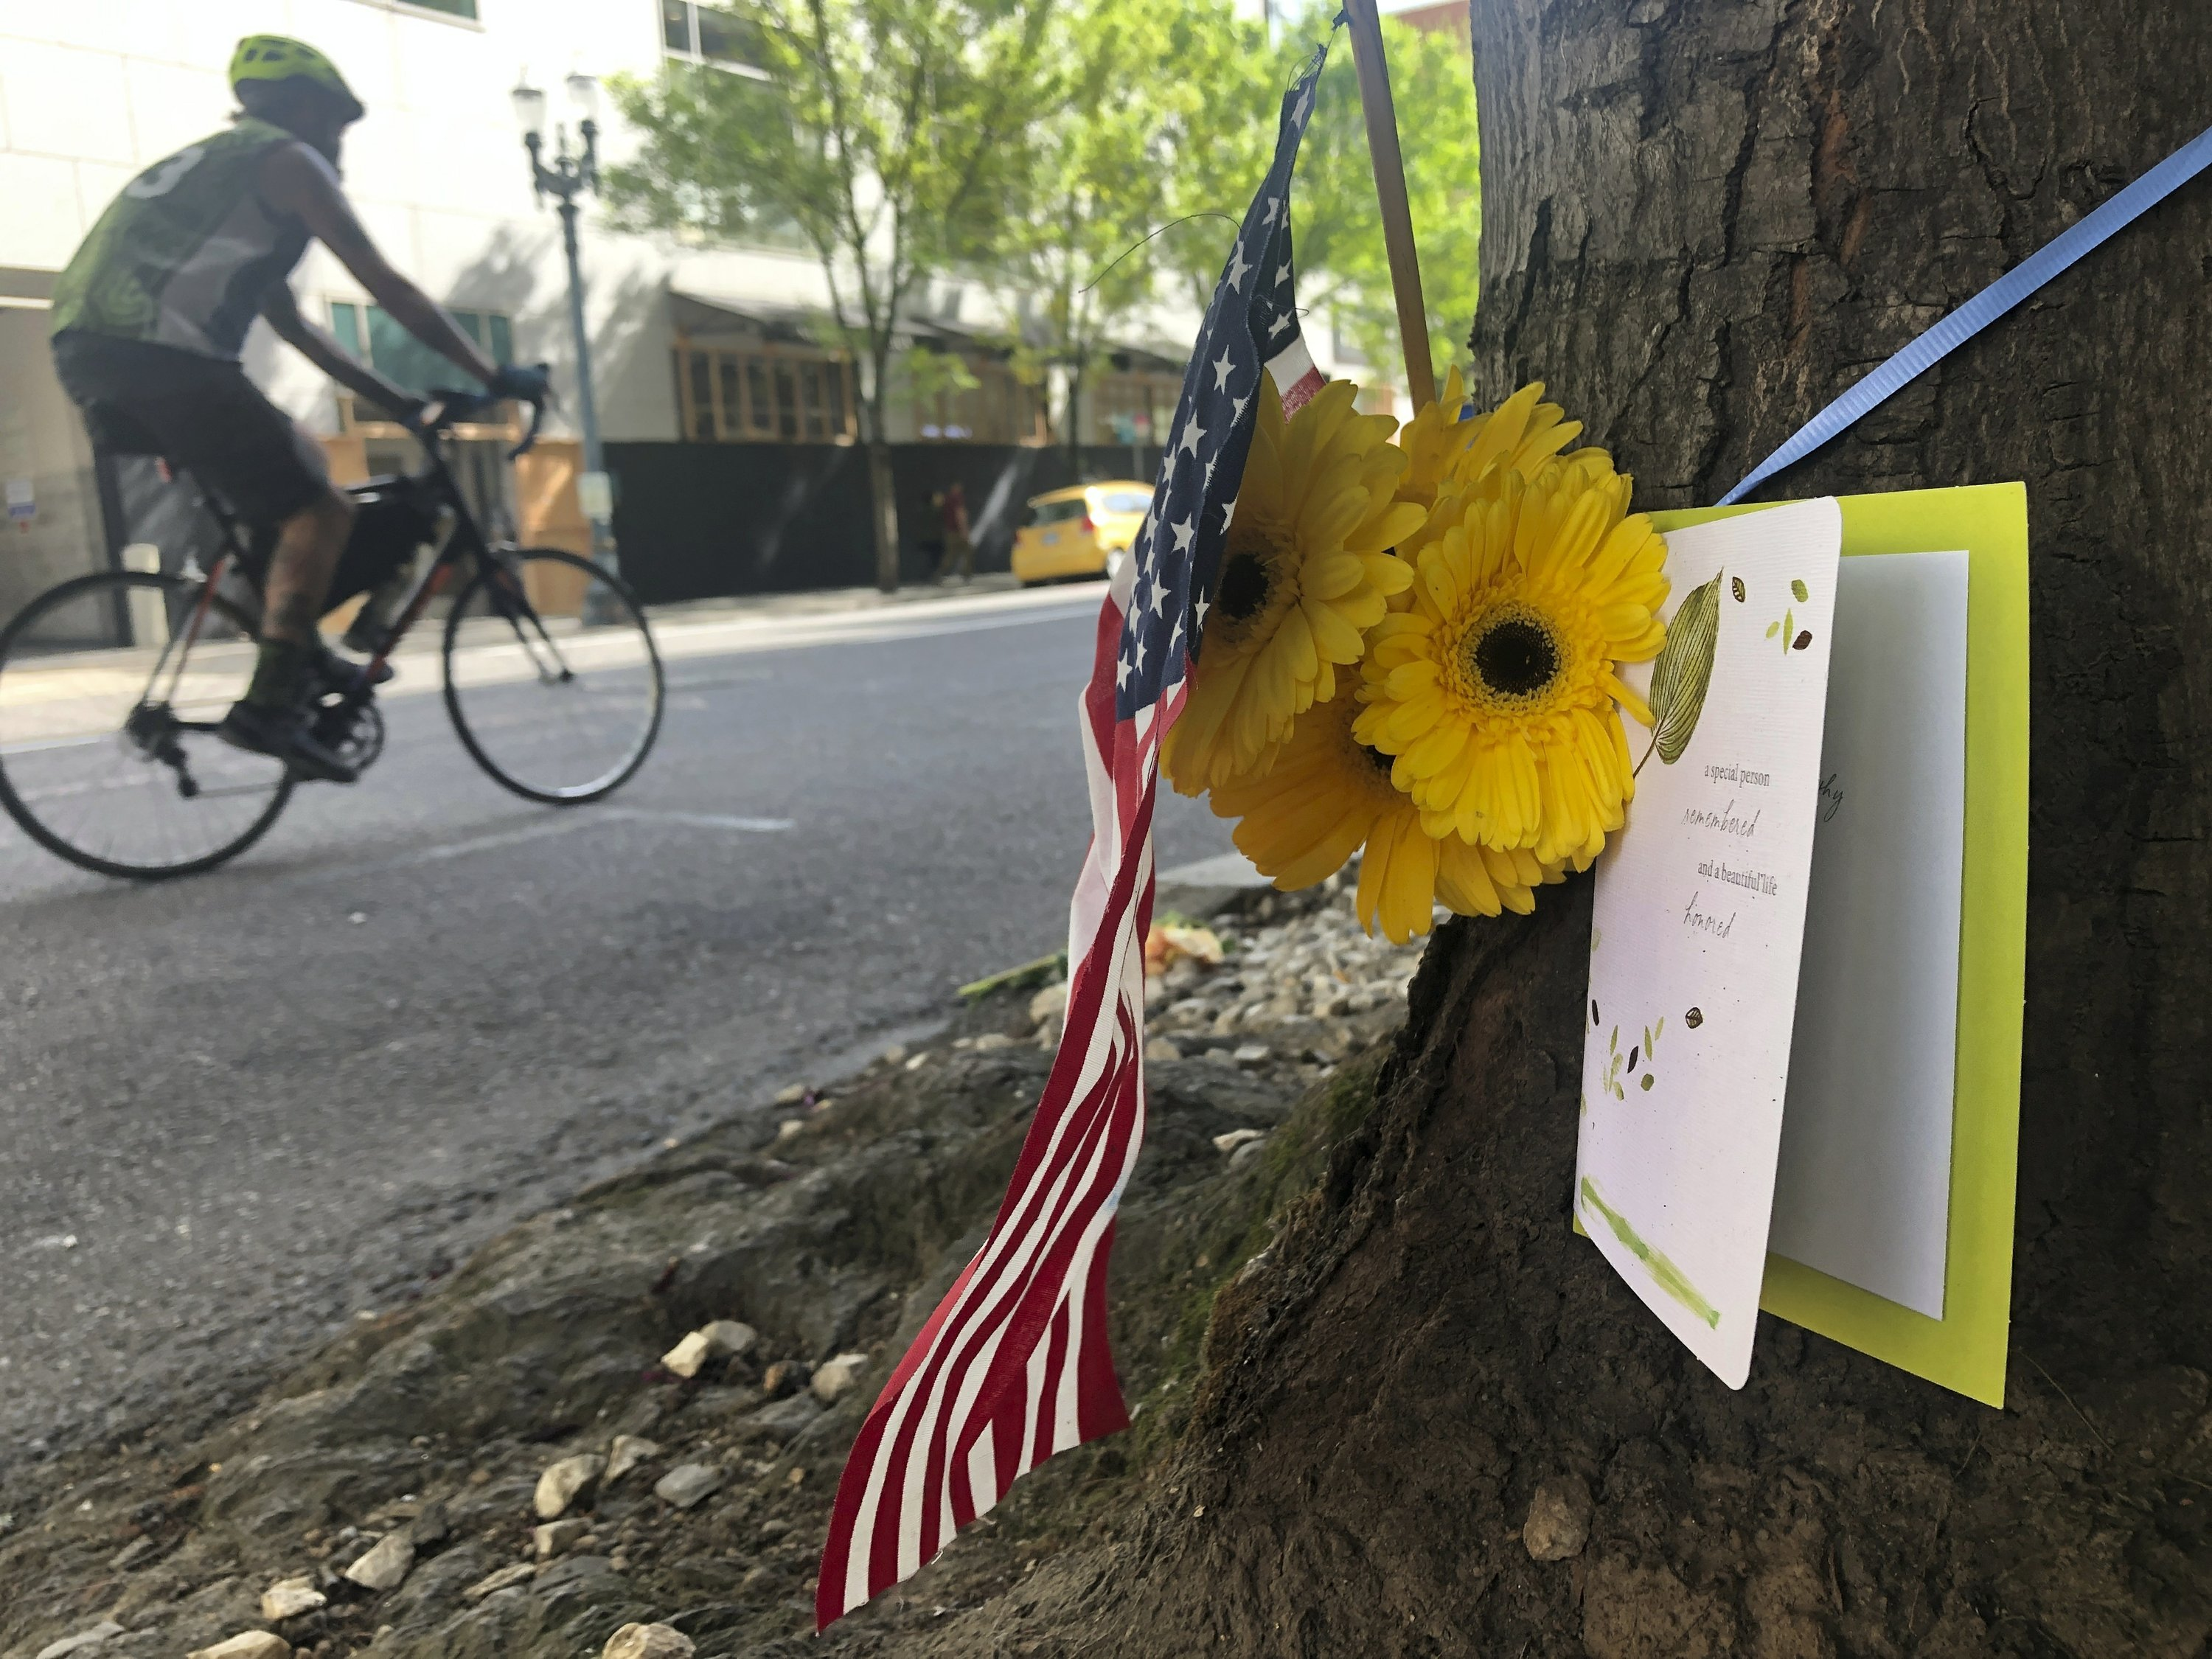 Trump, friends mourn right-wing activist killed in Portland